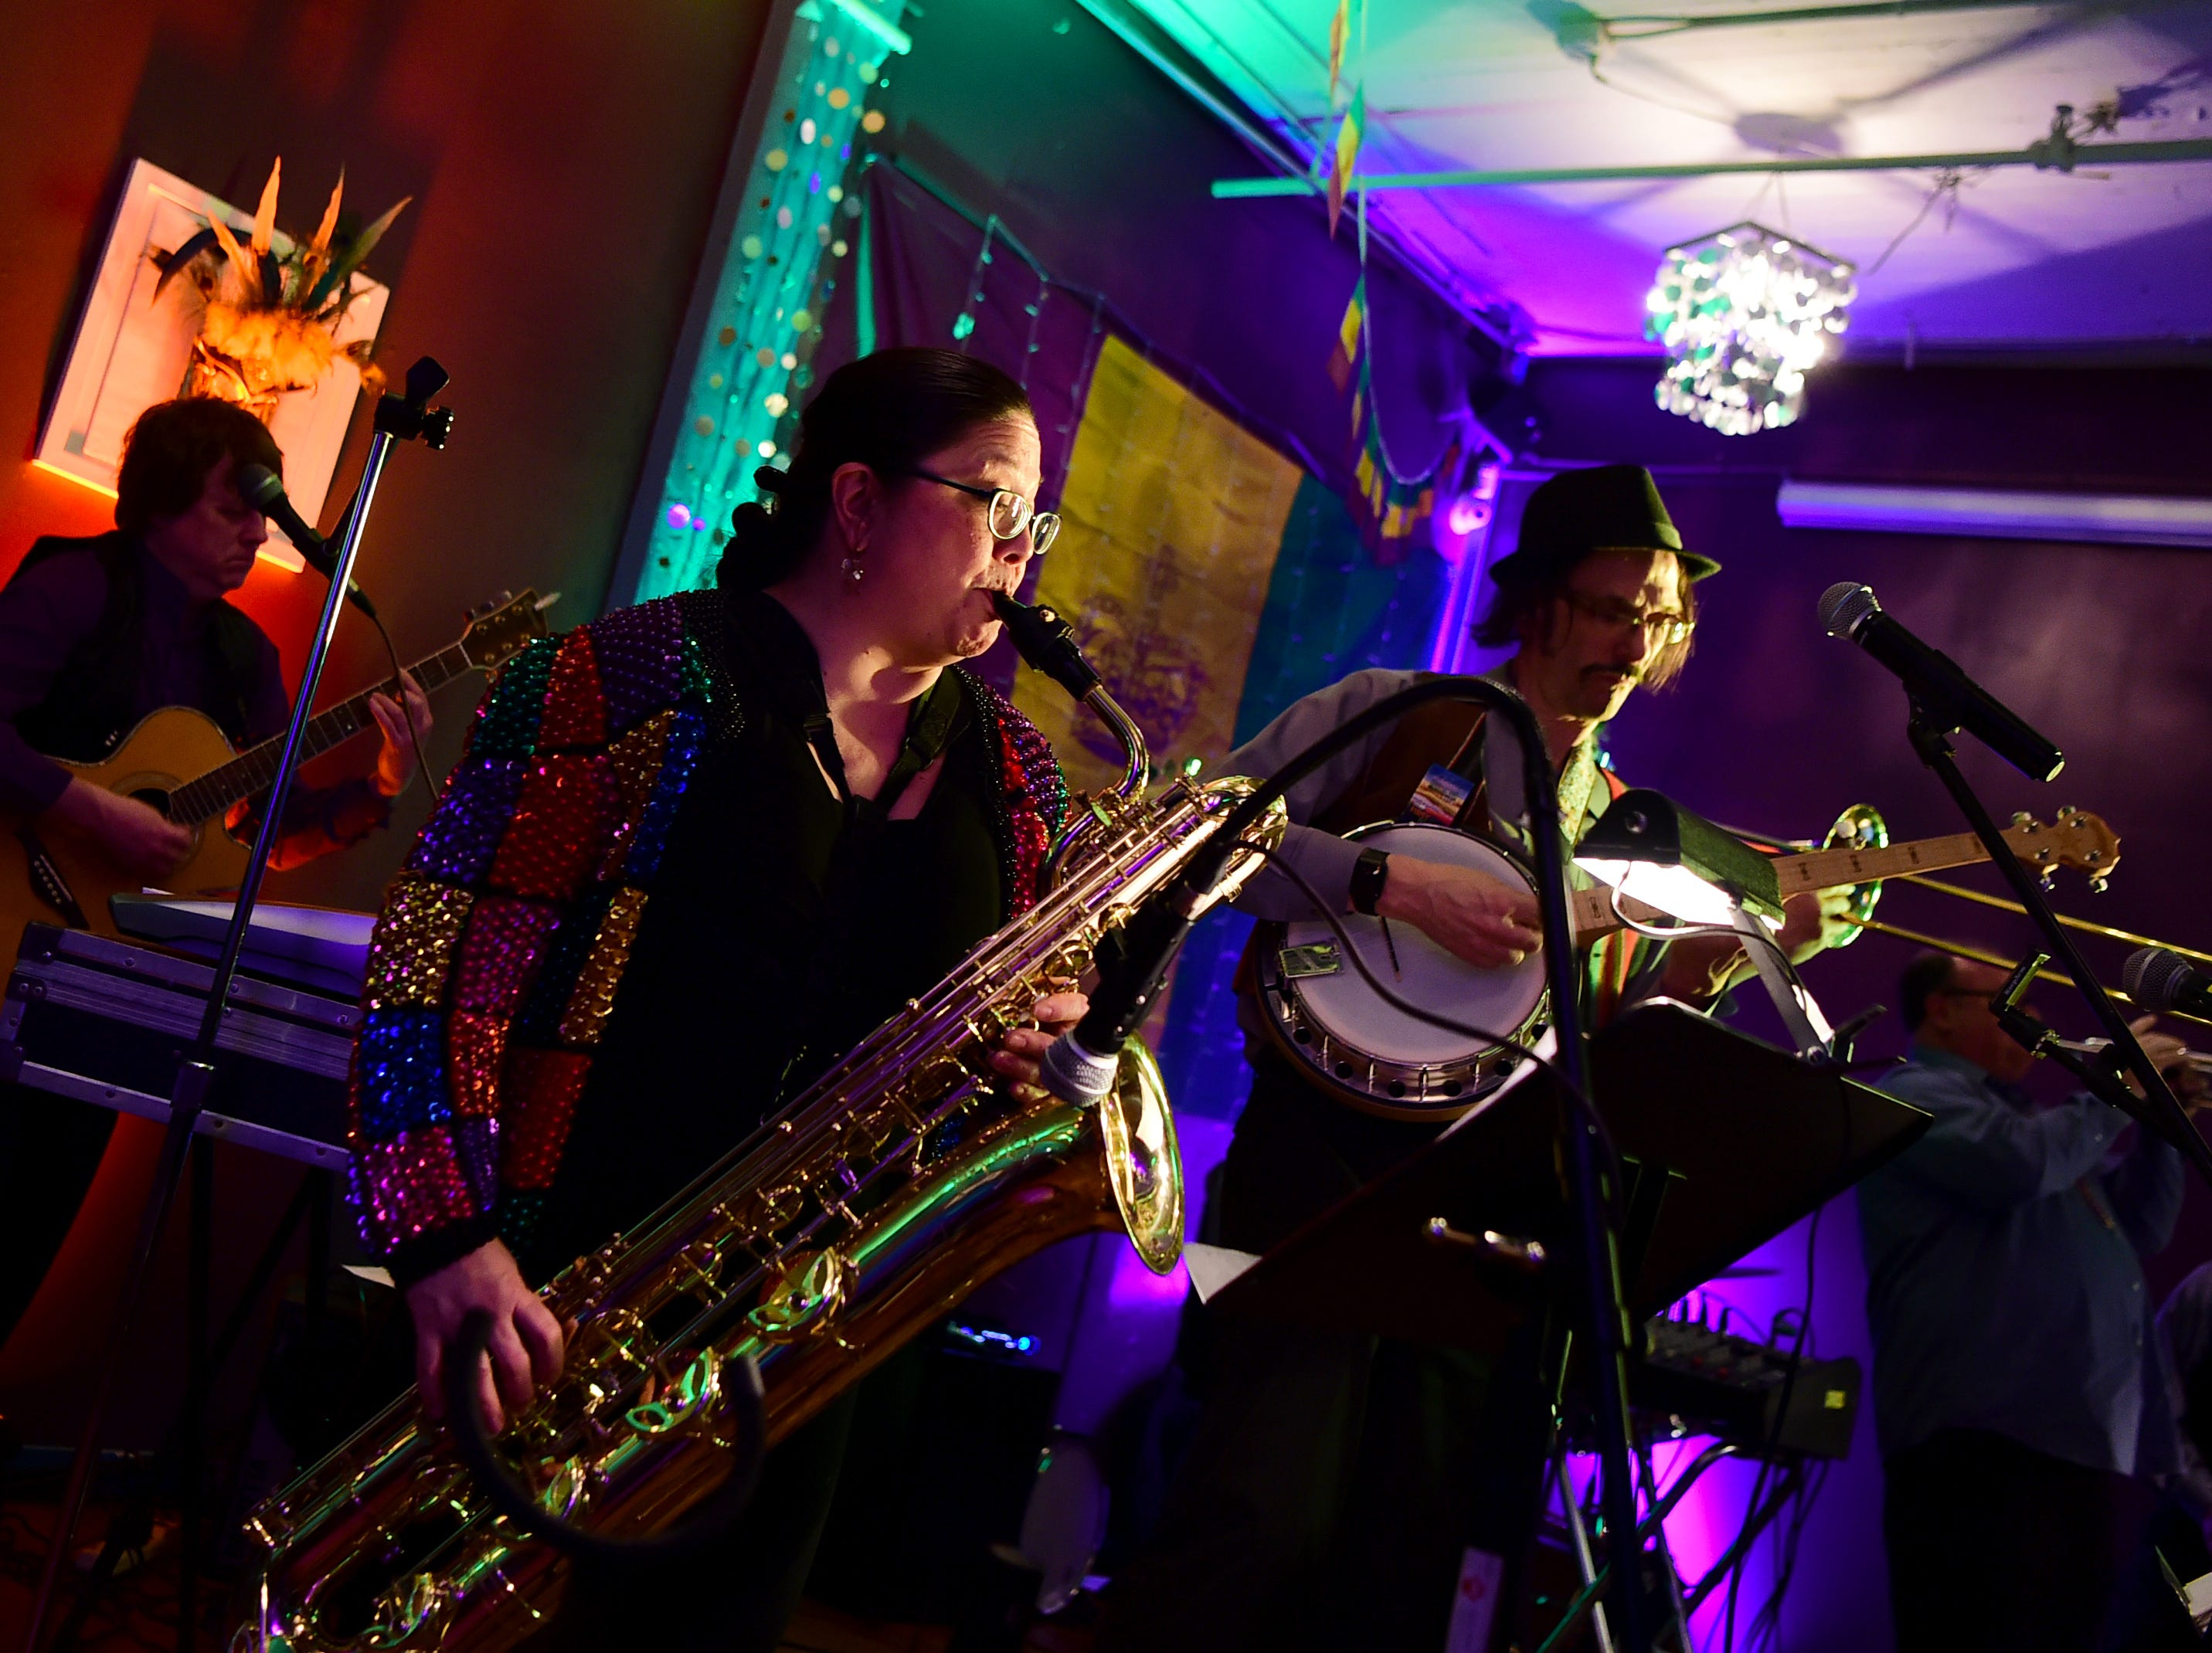 Basin Street Jazz Band during the 25th annual Rockin' Mardi Gras Celebration at the Lost Dog Cafe & Lounge in downtown Binghamton. March 5, 2019.